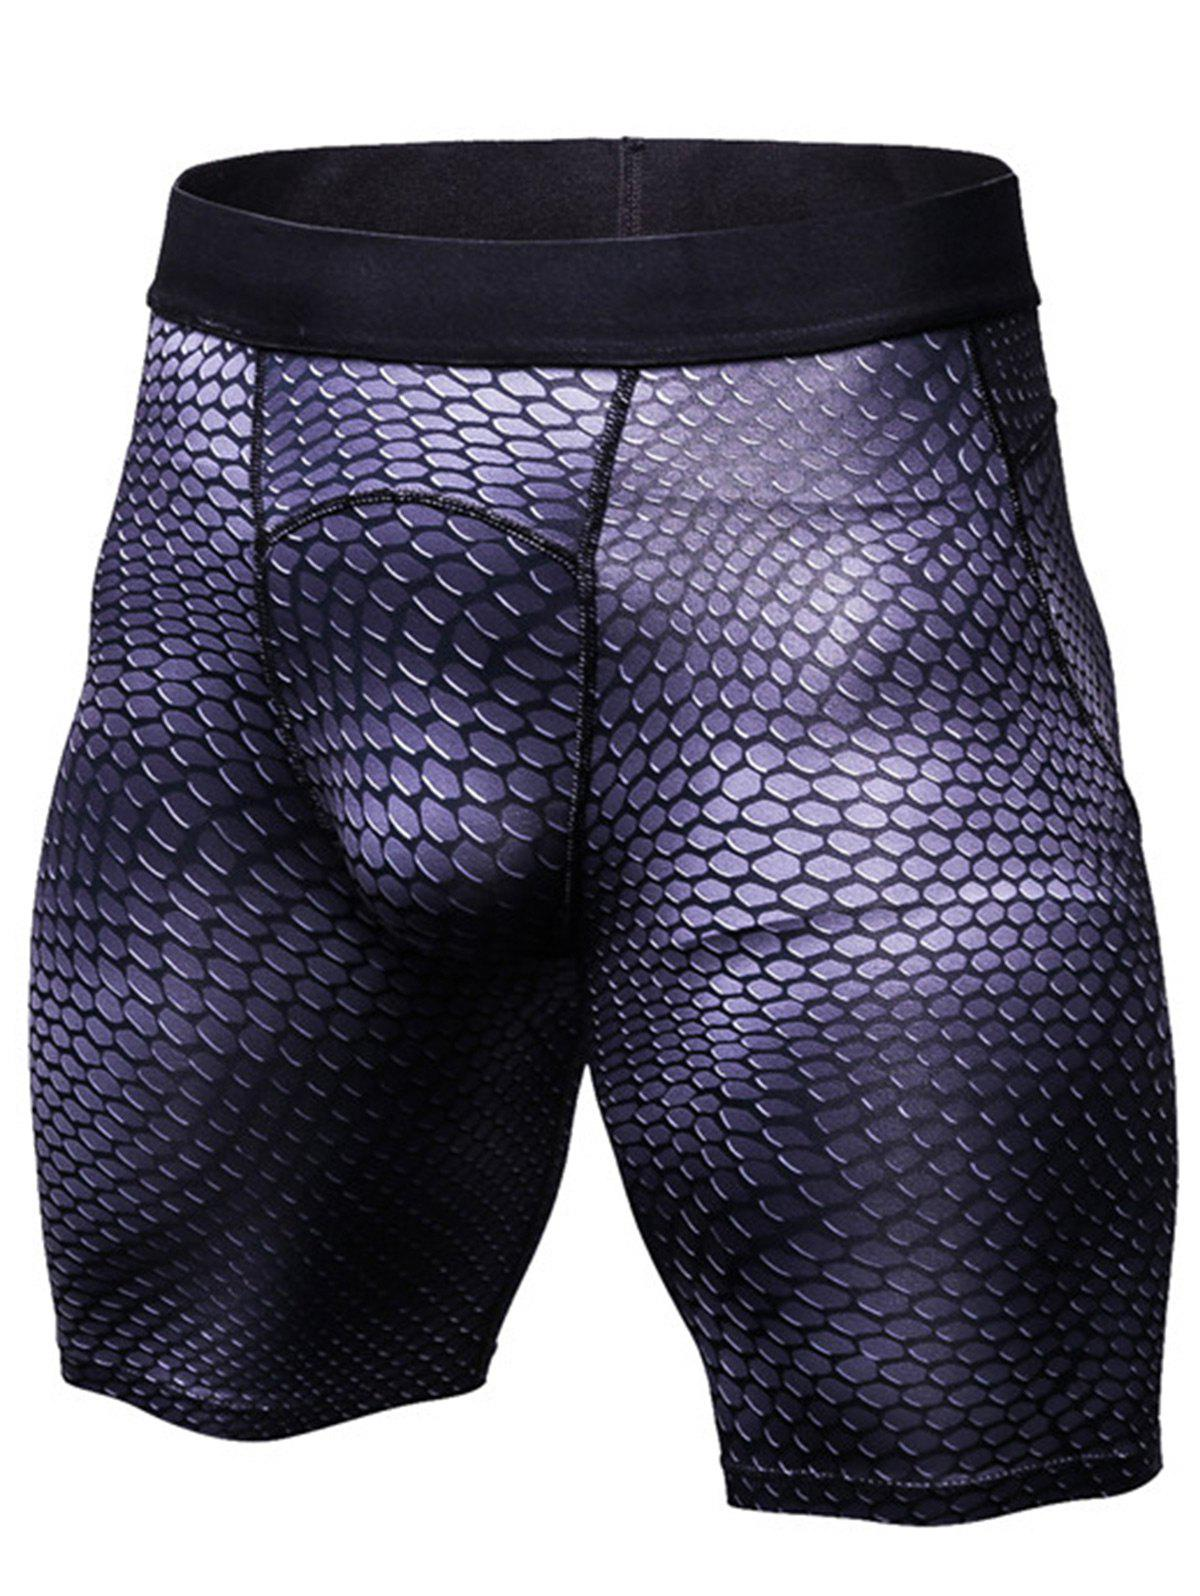 Unique Fitted 3D Geometric Print Gym Shorts